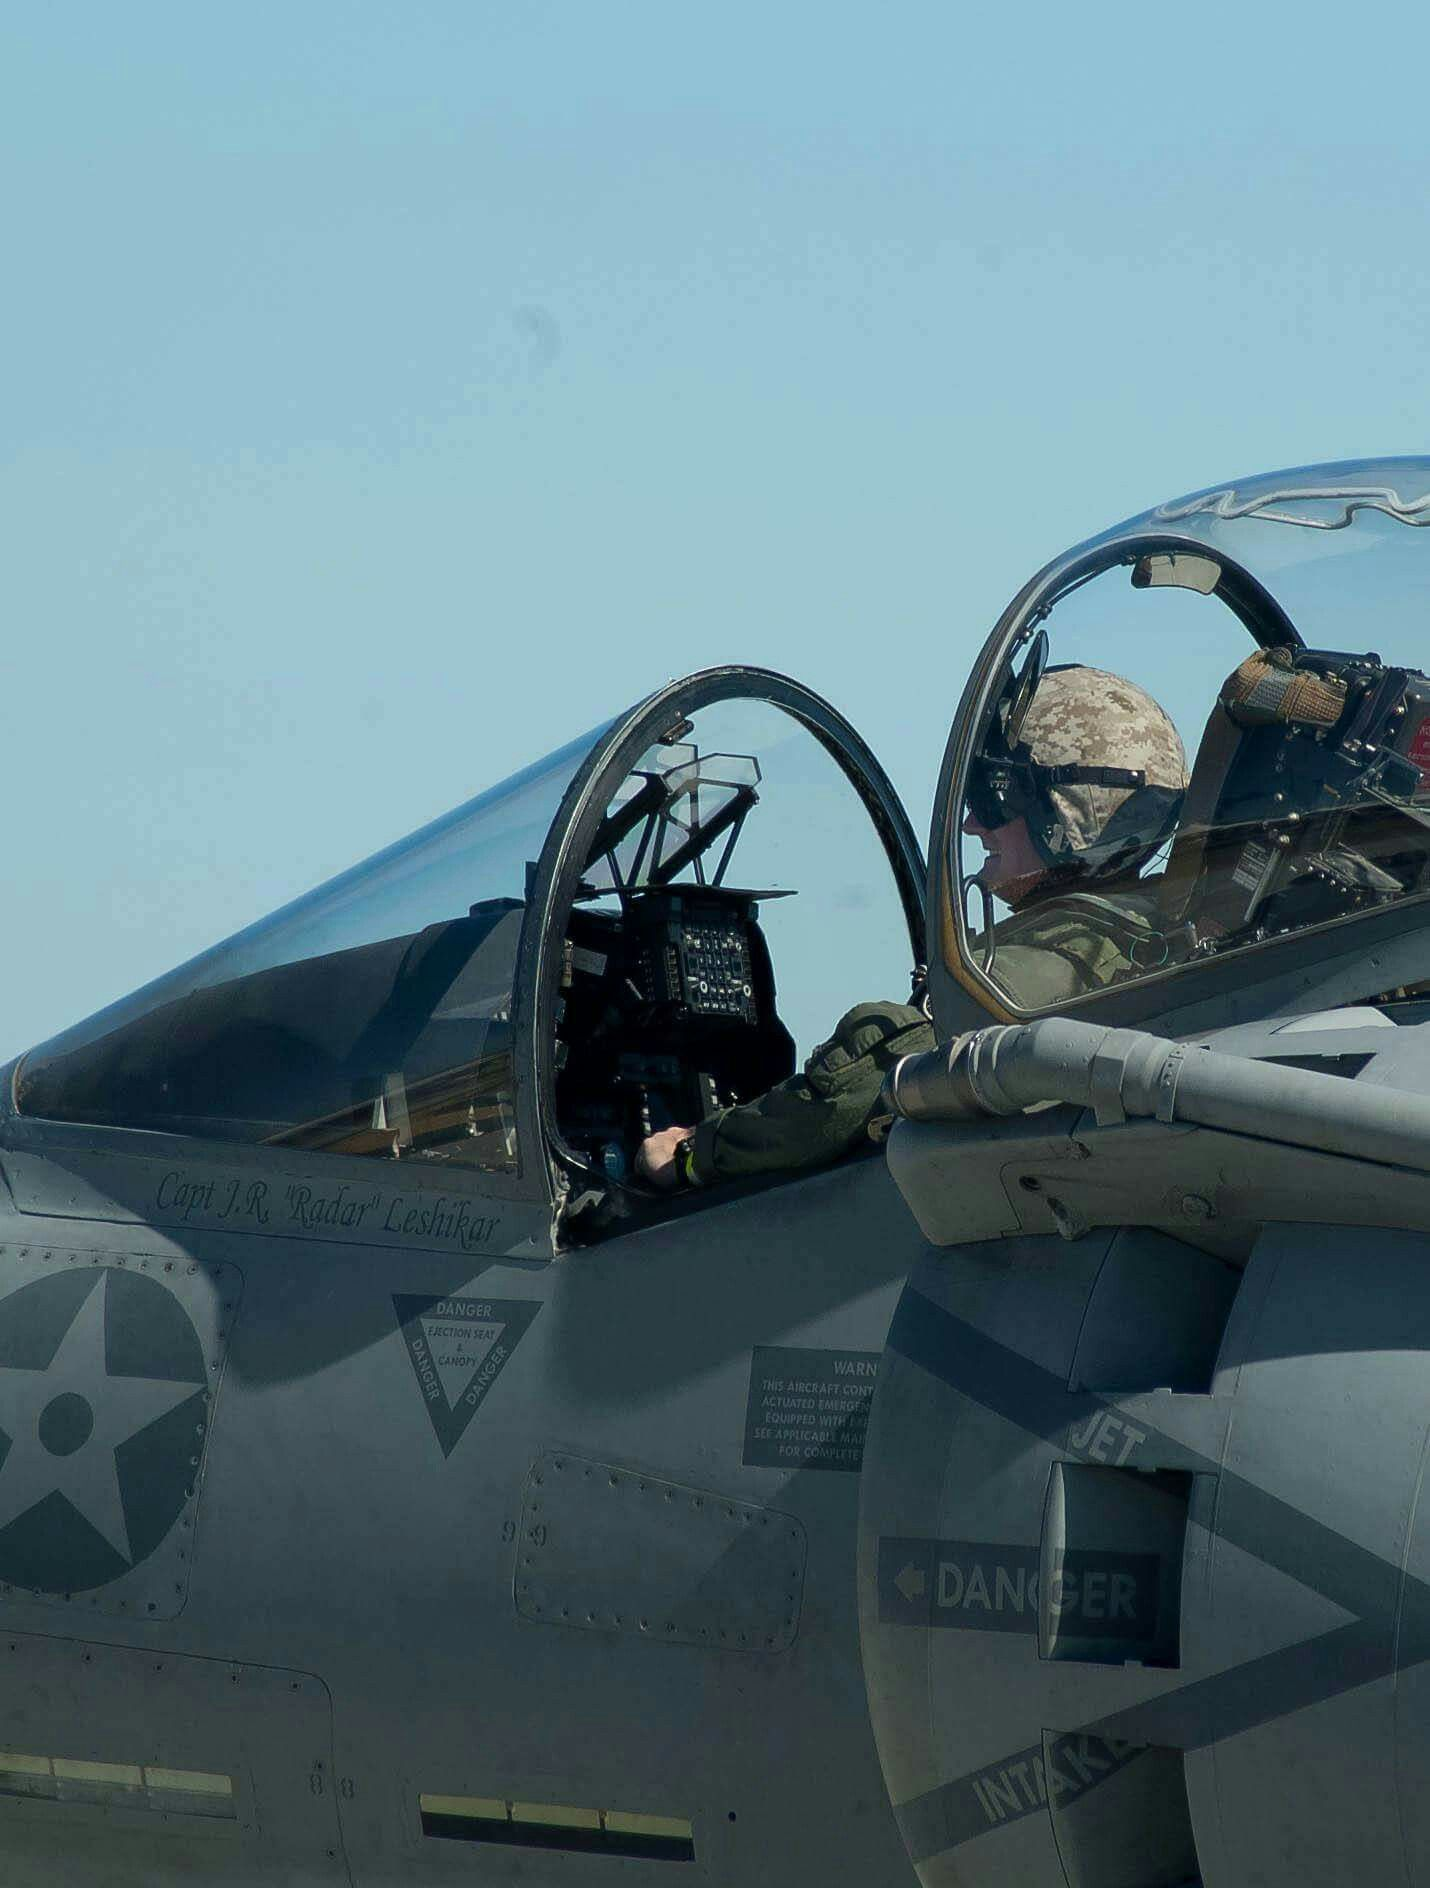 Pin by Michael Tinsley on Авіація Fighter jets, Military